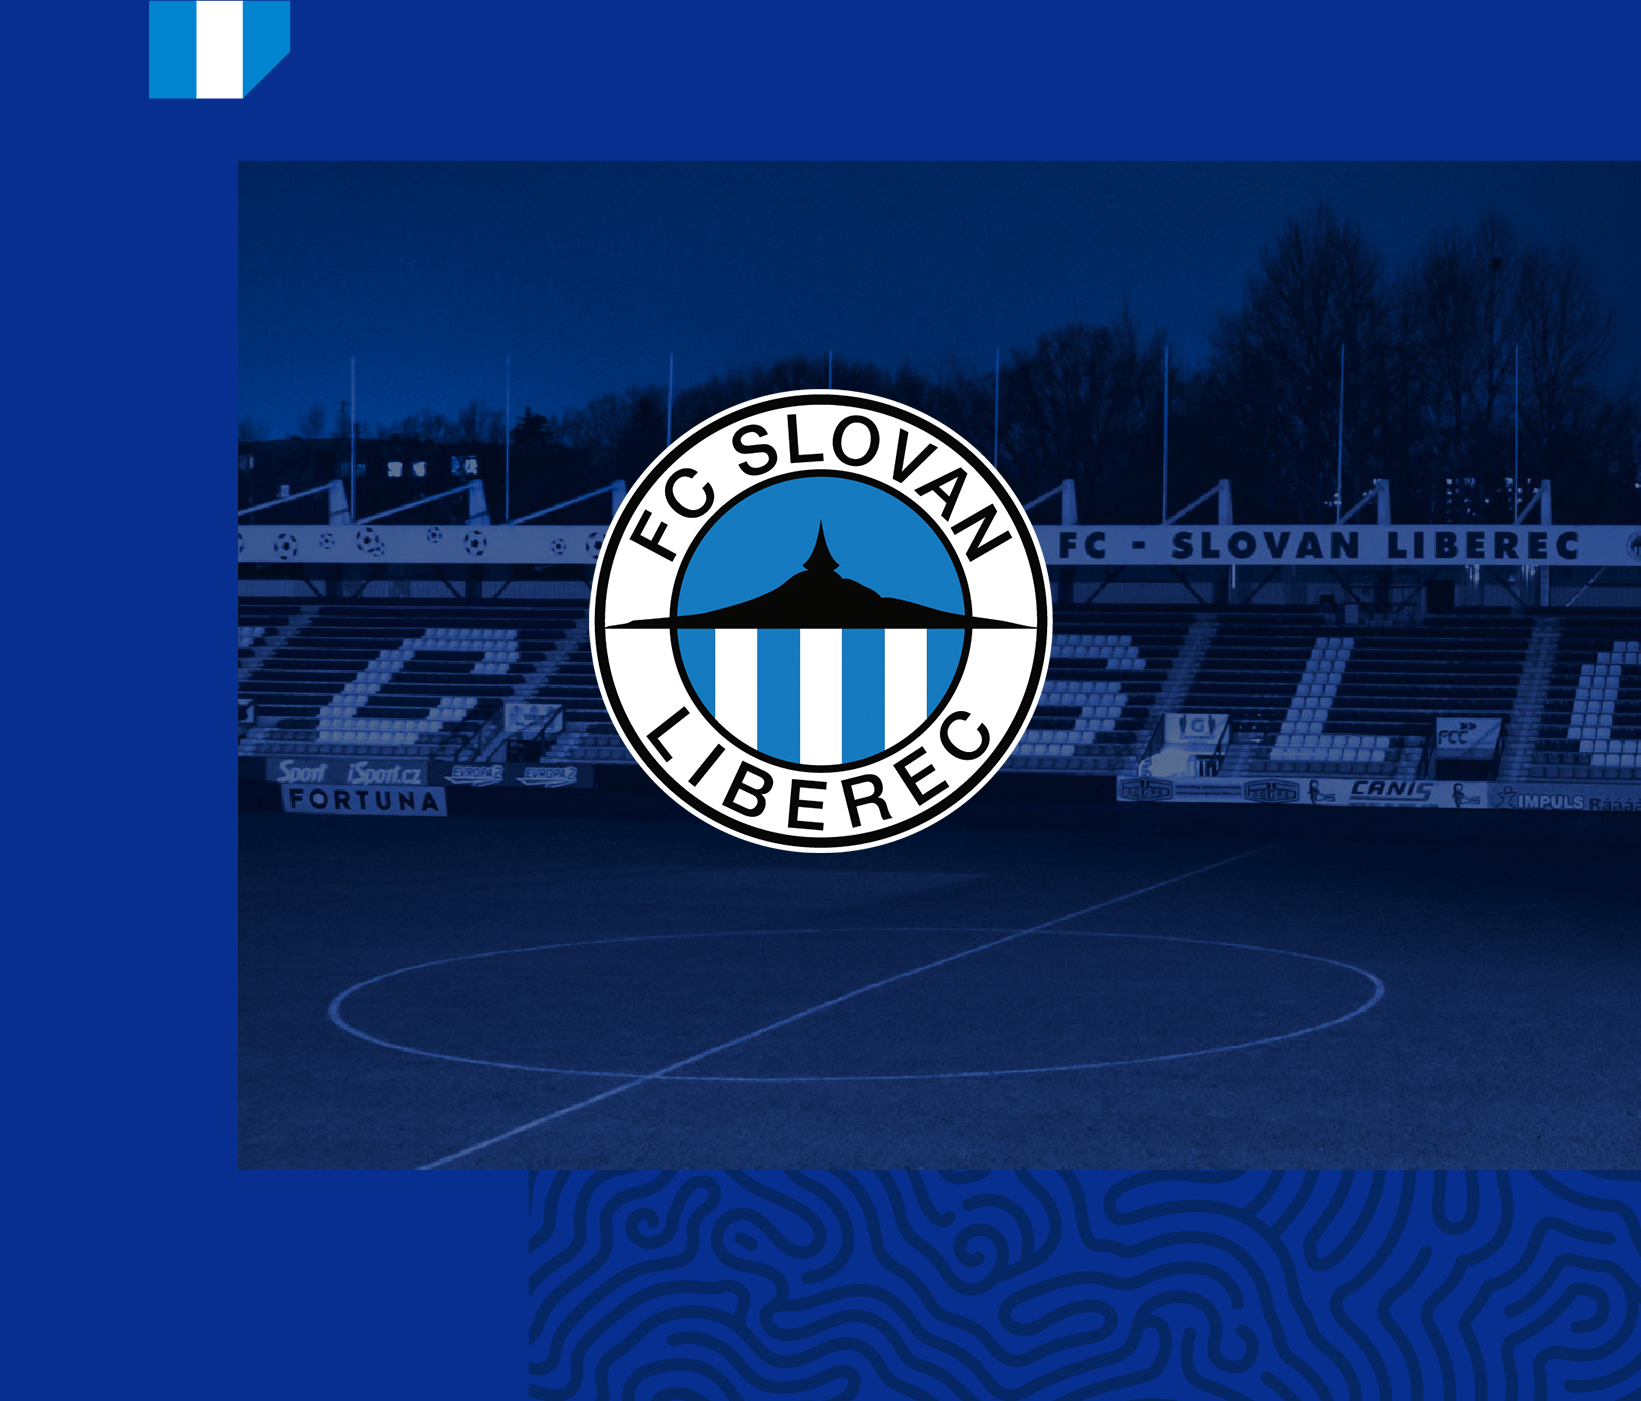 ***CORRECTION*** PLEASE CORRECT THE NAME OF THE TEAM TO FC ...  |Fcsb-slovan Liberec